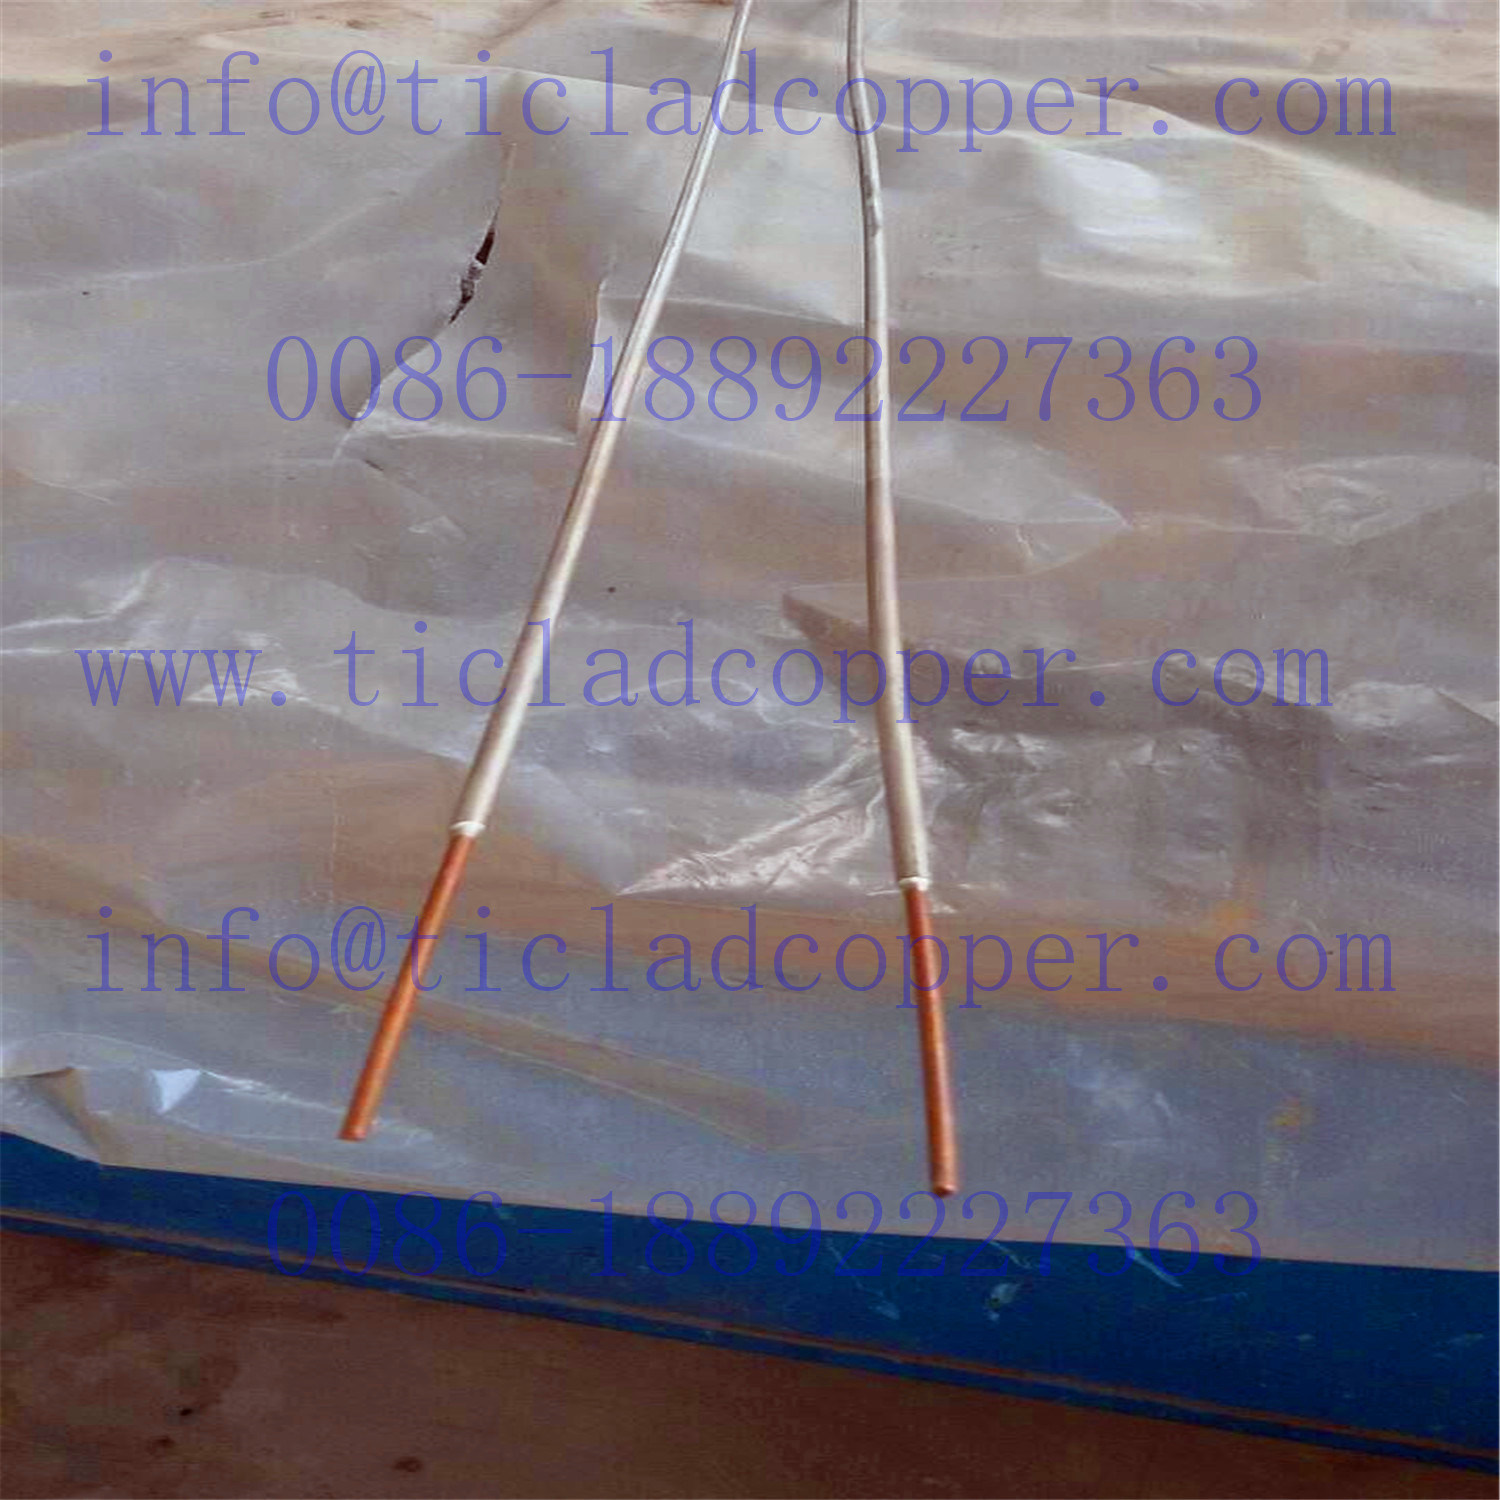 Dsa Titanium Clad Copper Wire/Rod Anode for Chloro-Alkali Industry